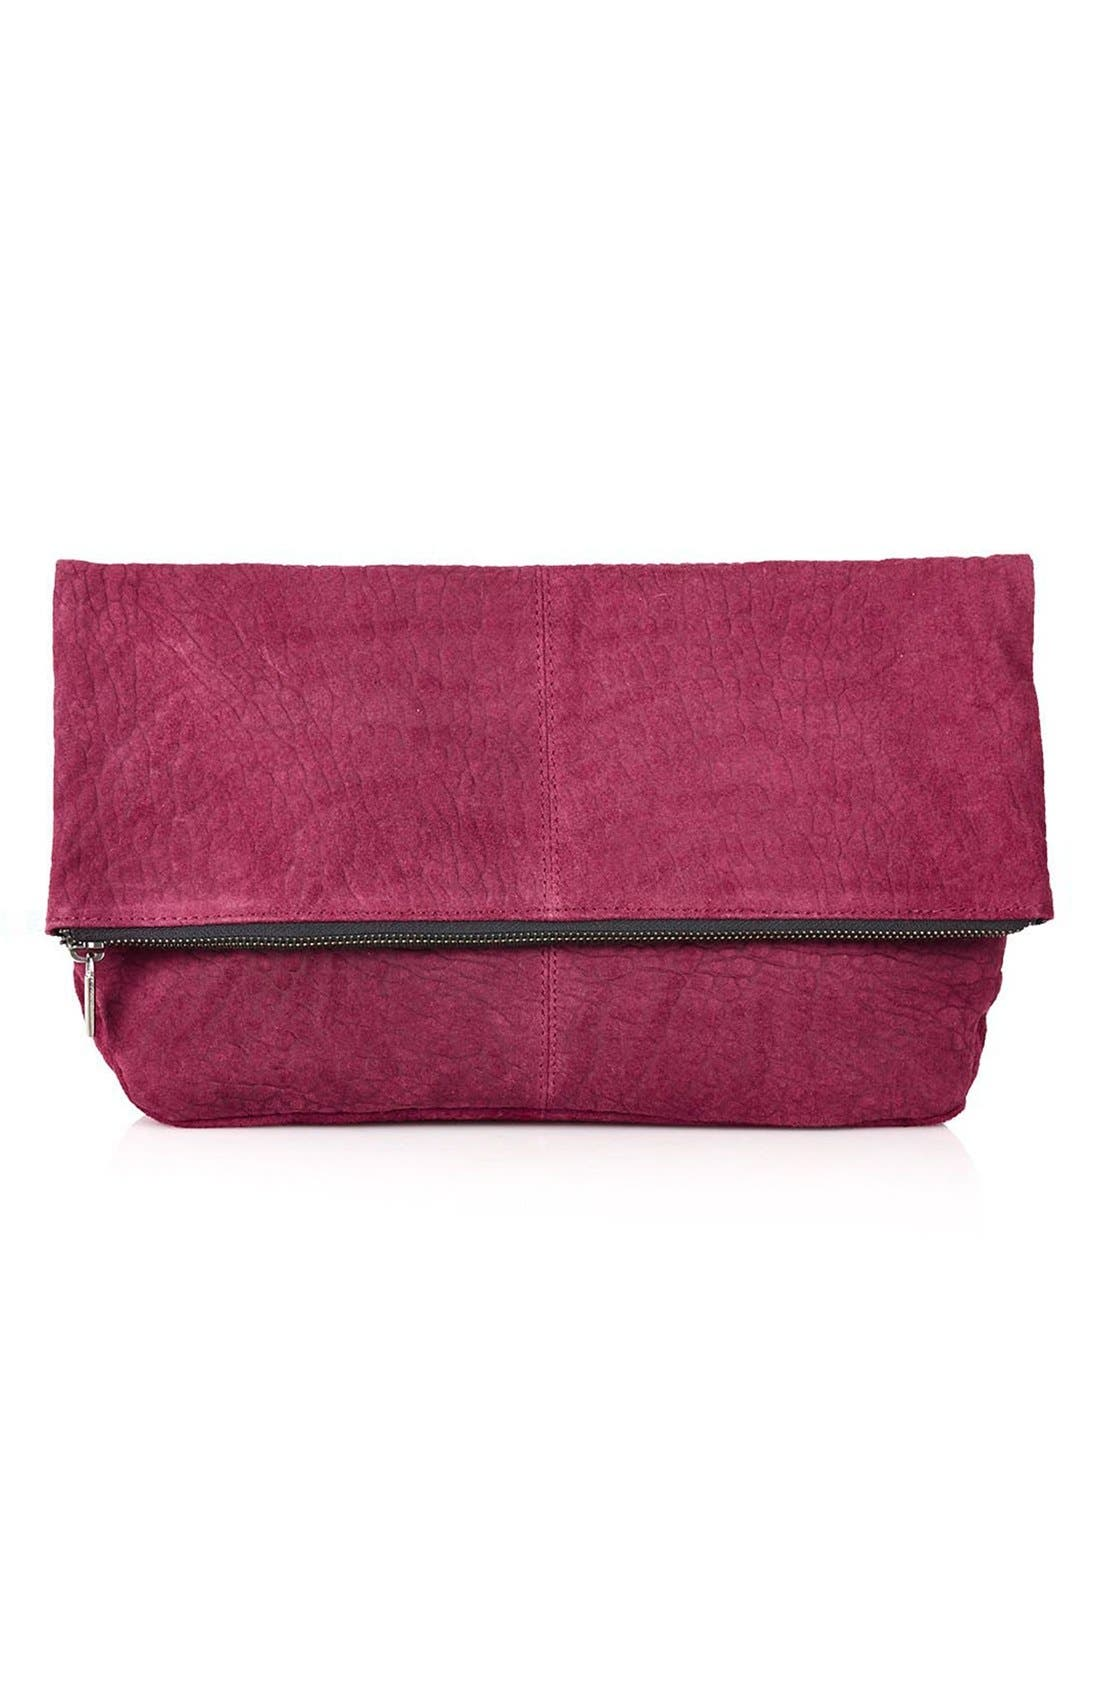 Alternate Image 1 Selected - Topshop Snakeskin Embossed Suede Clutch